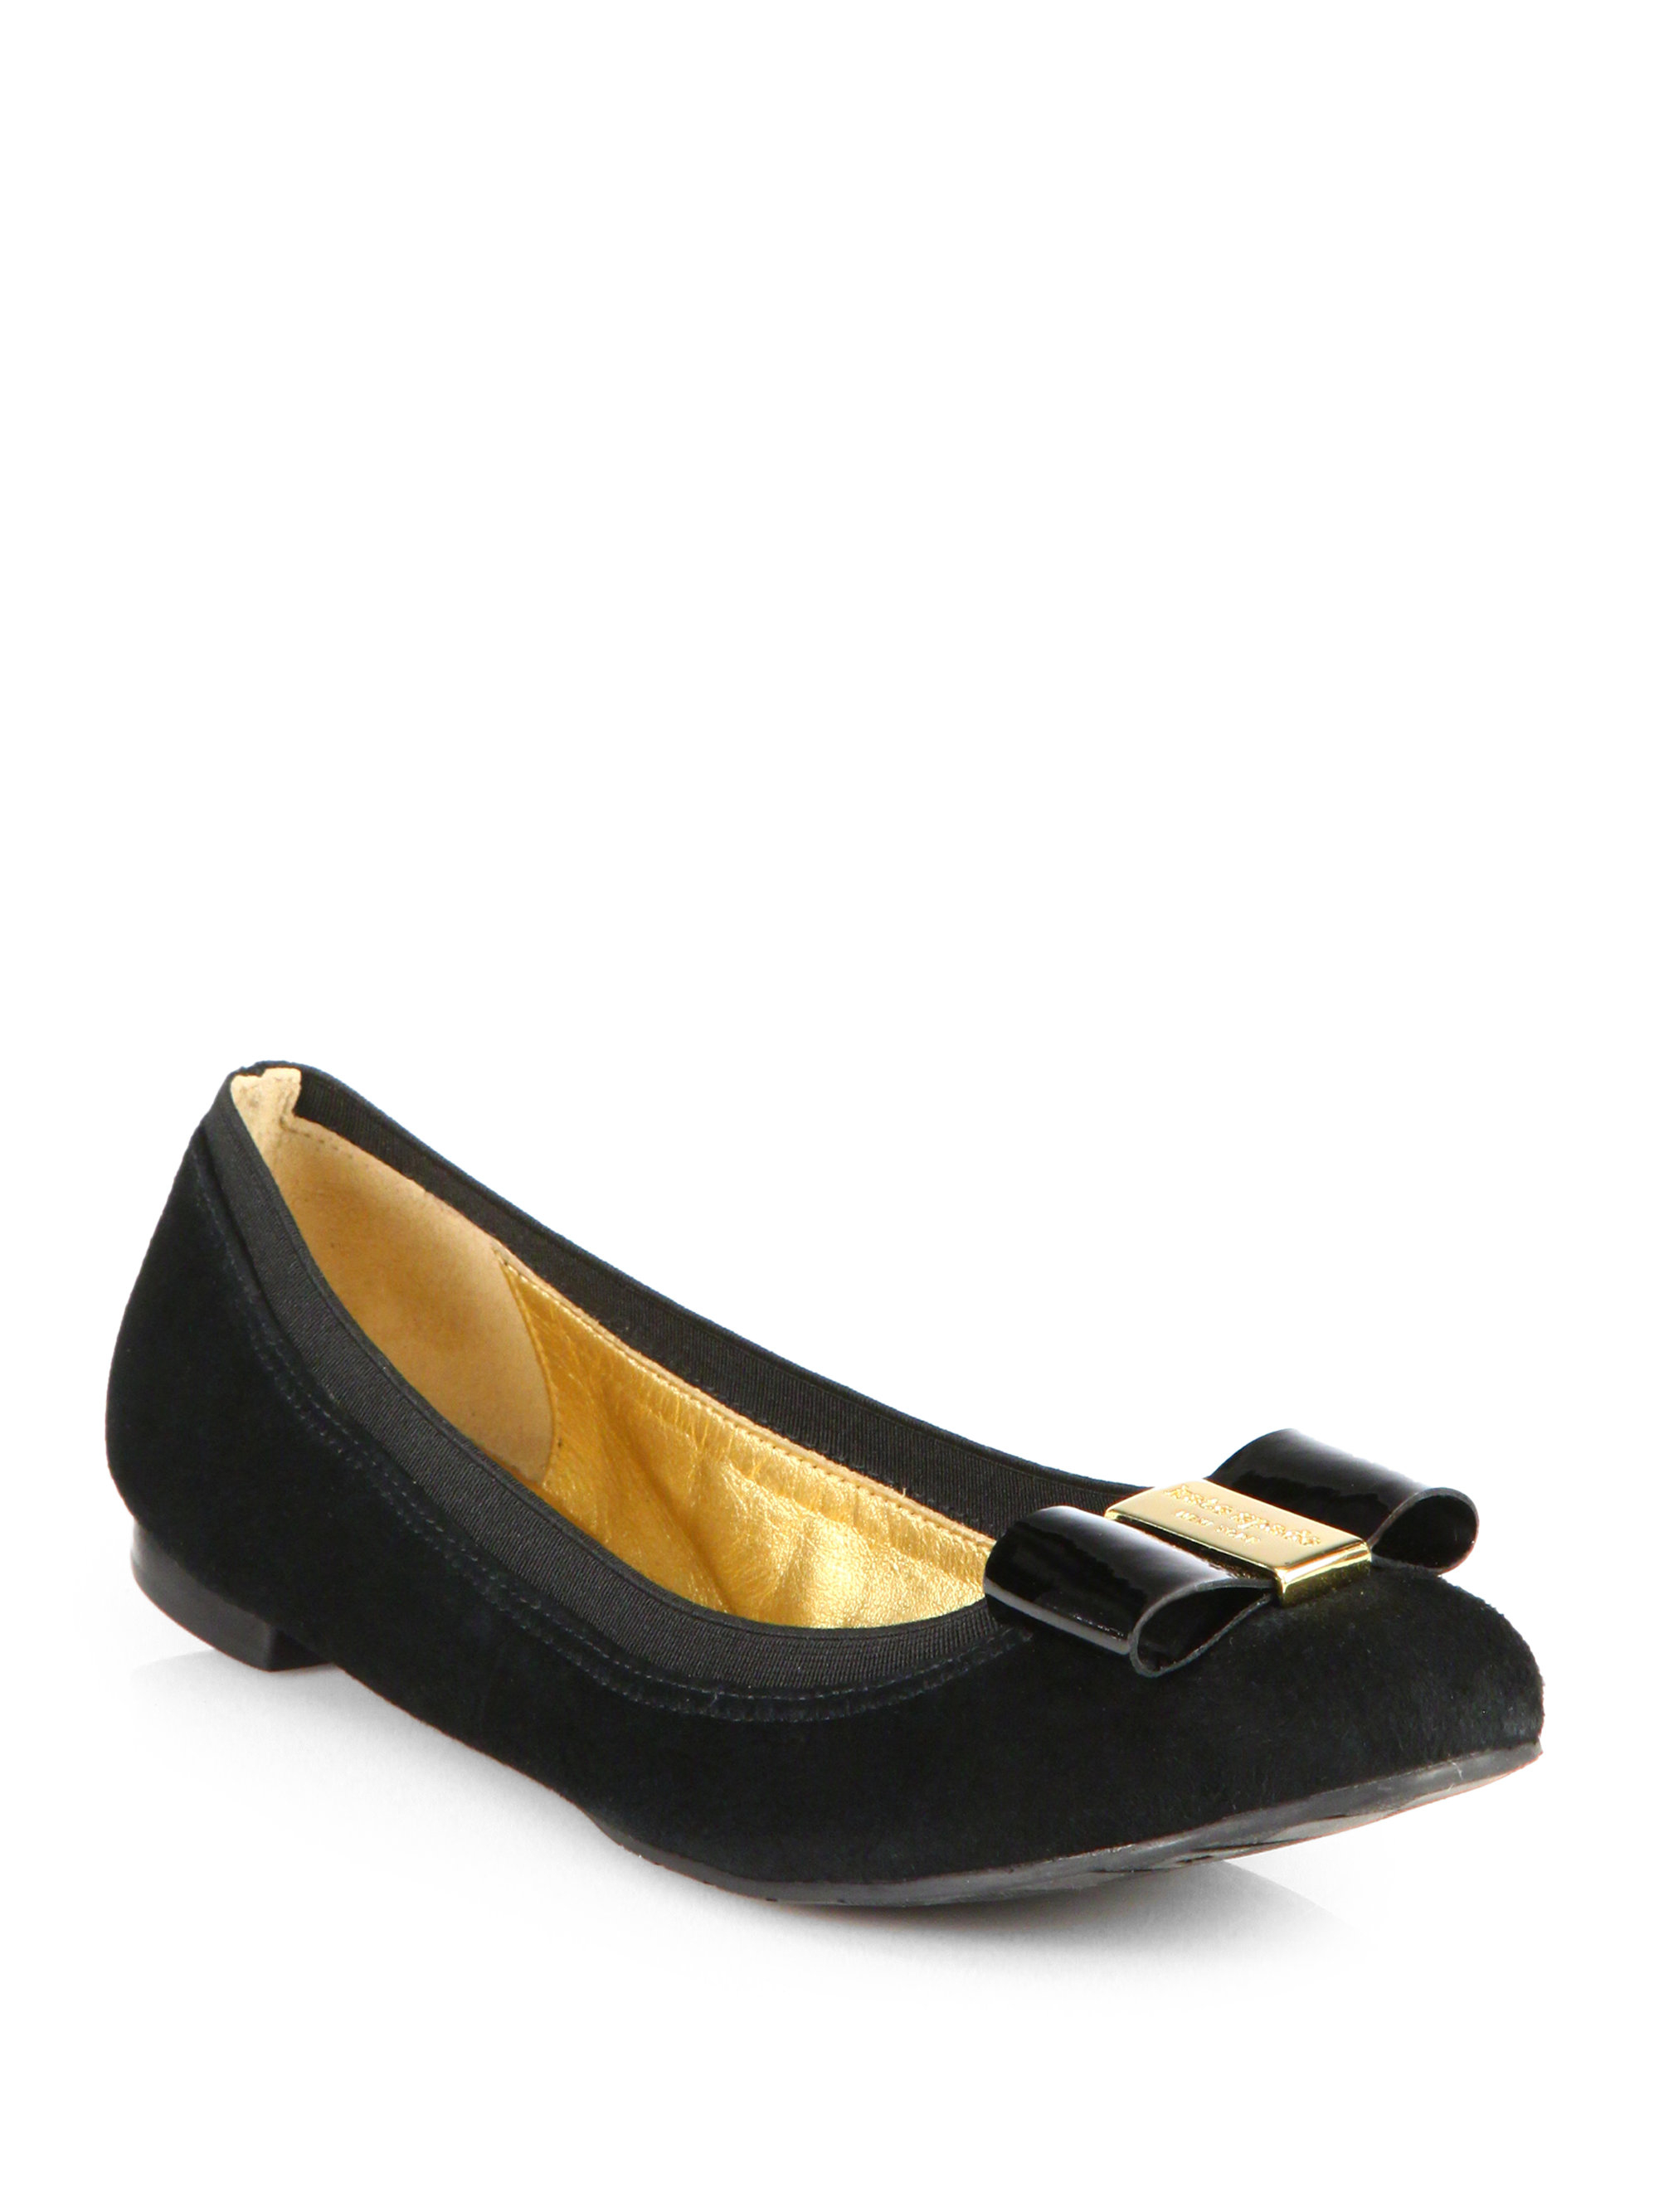 Lyst Kate Spade Tock Suede Bow Ballet Flats In Black